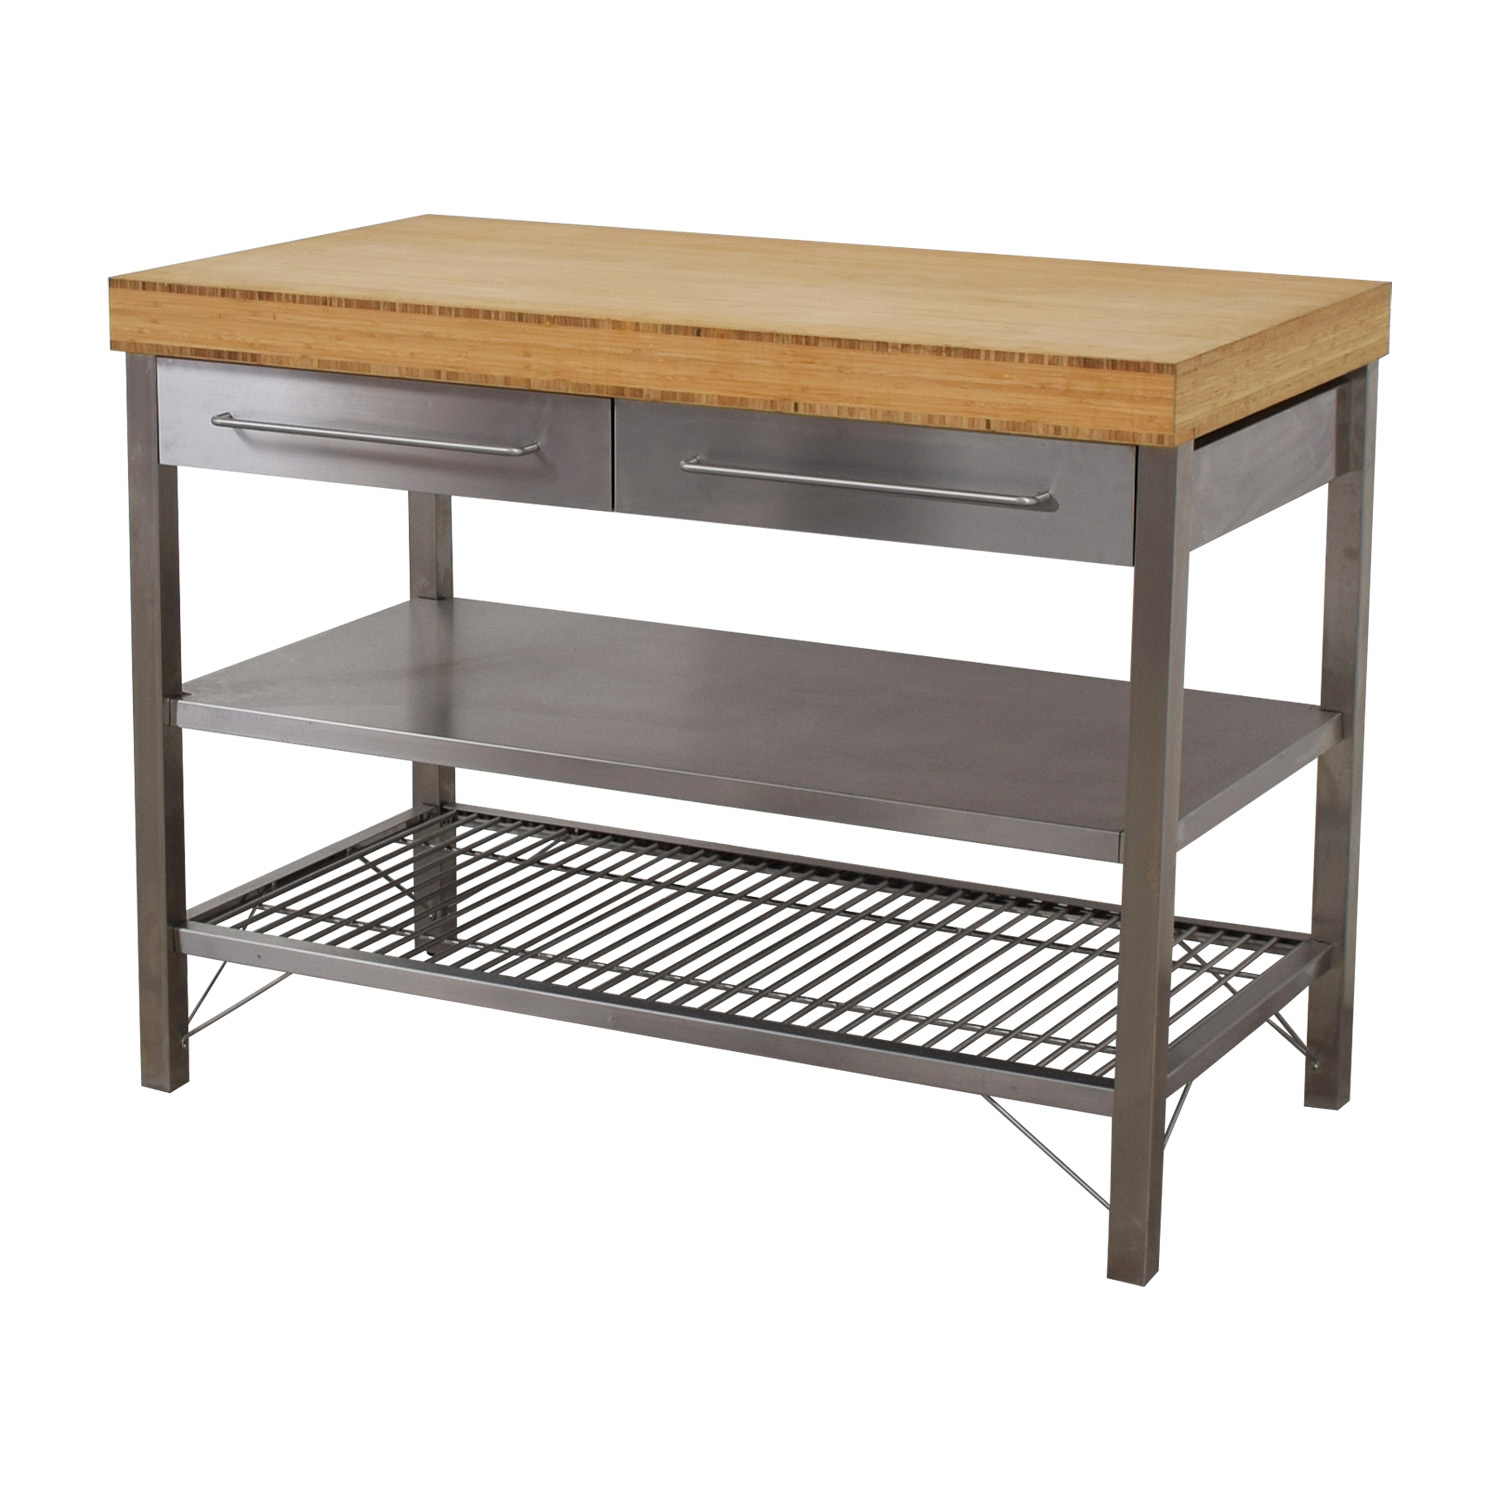 Ikea Table And Bench 2021